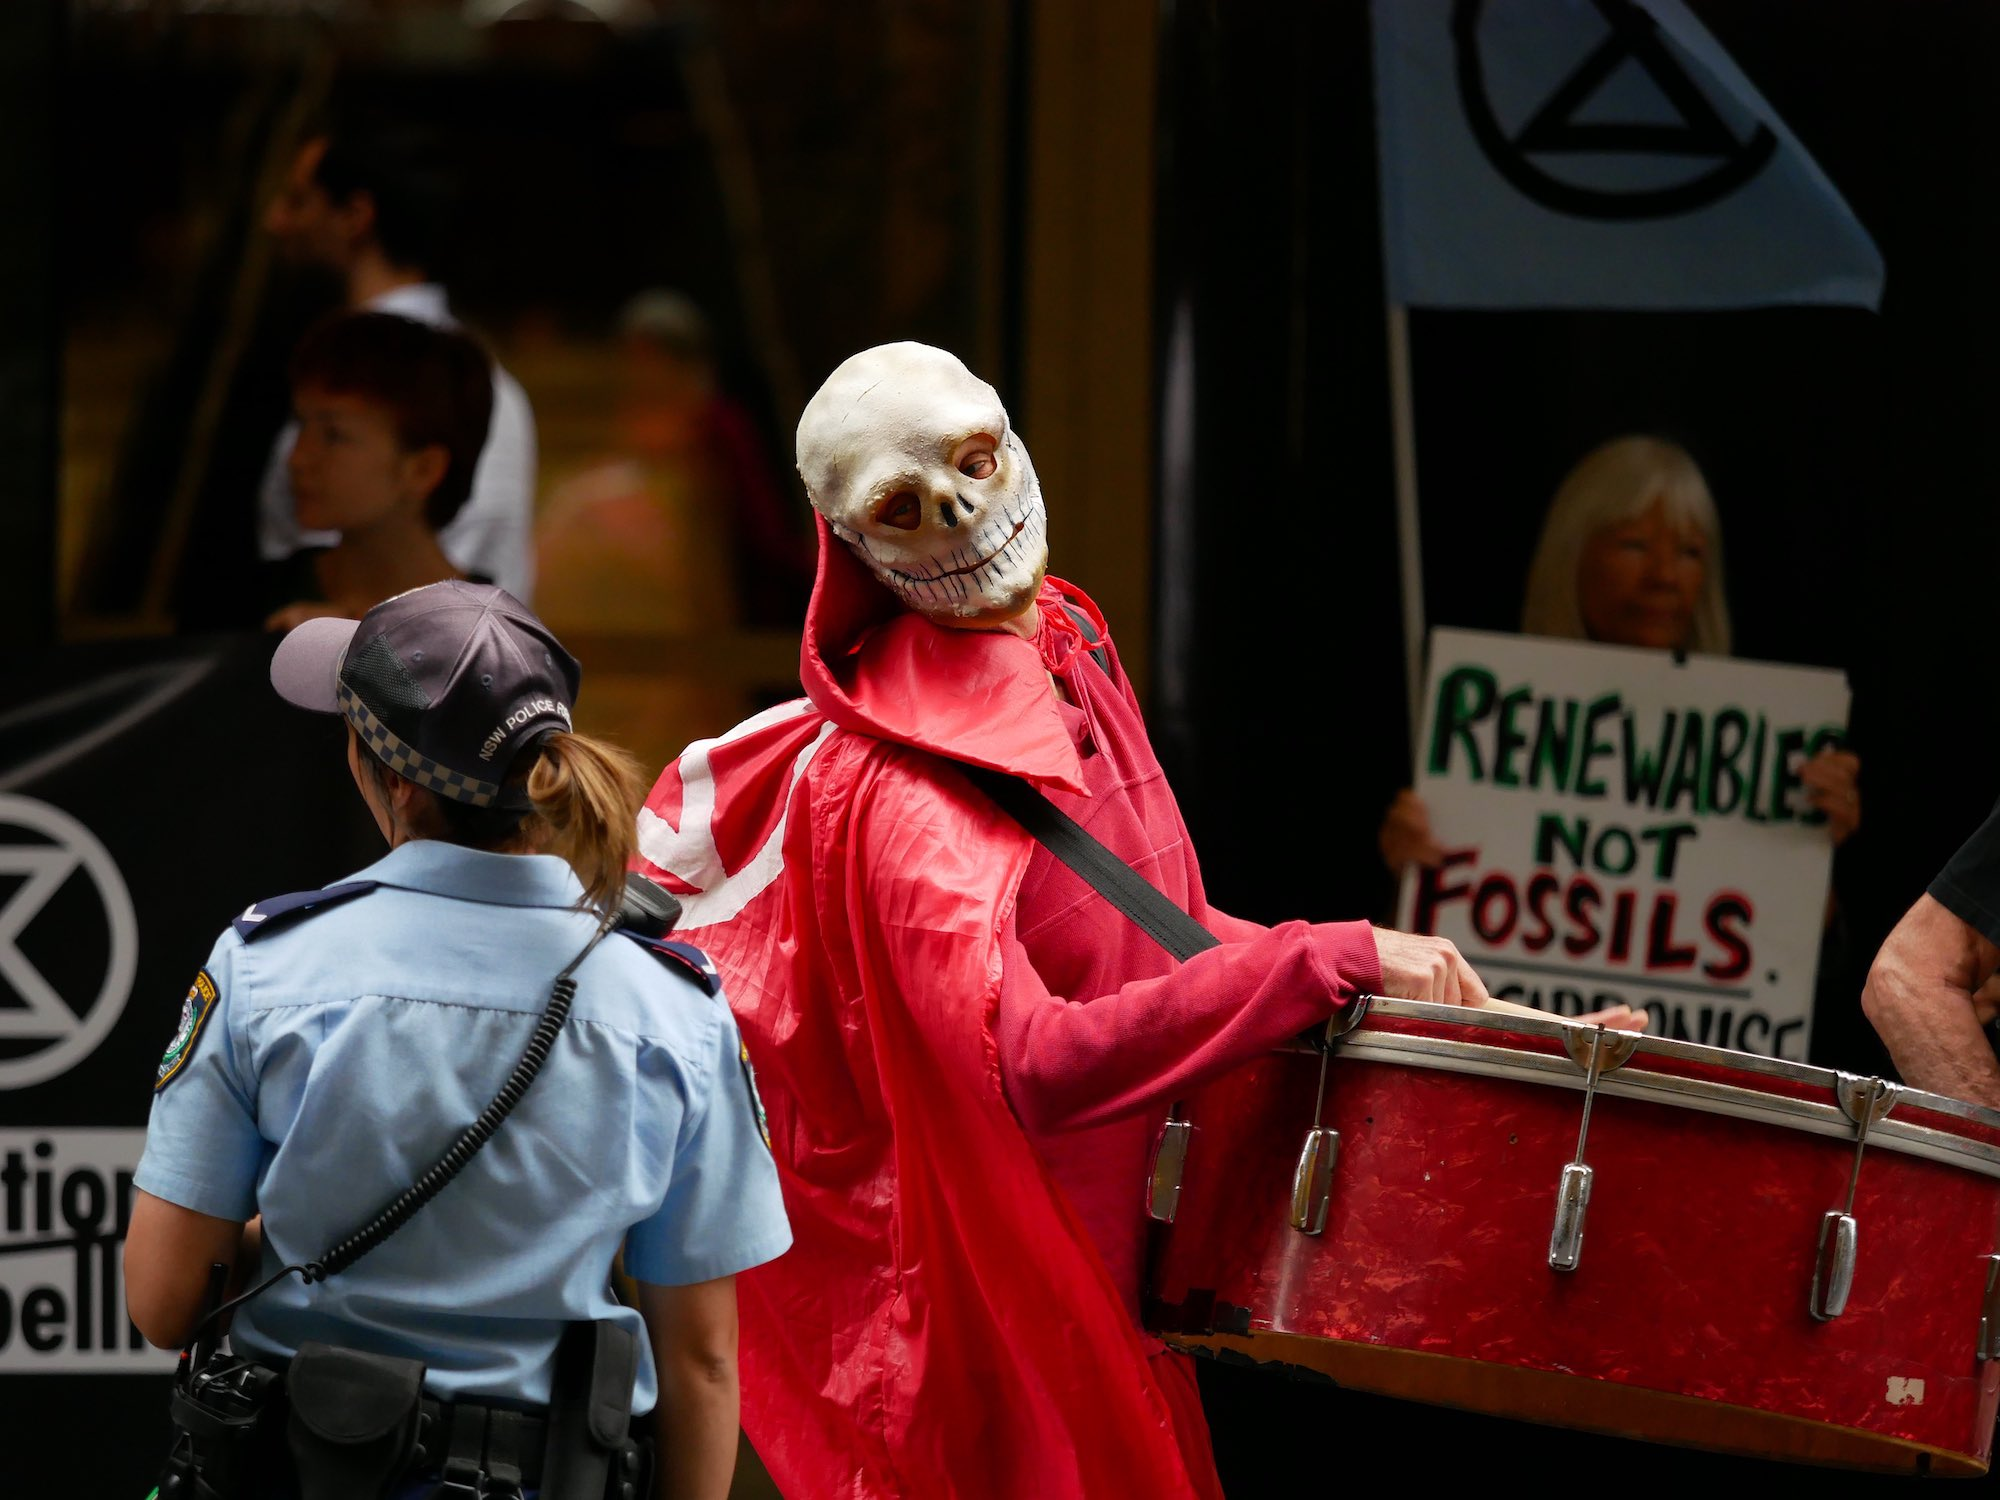 Sydney, Australia. Rebels block the National Australia Bank & tell it not to nab their future.